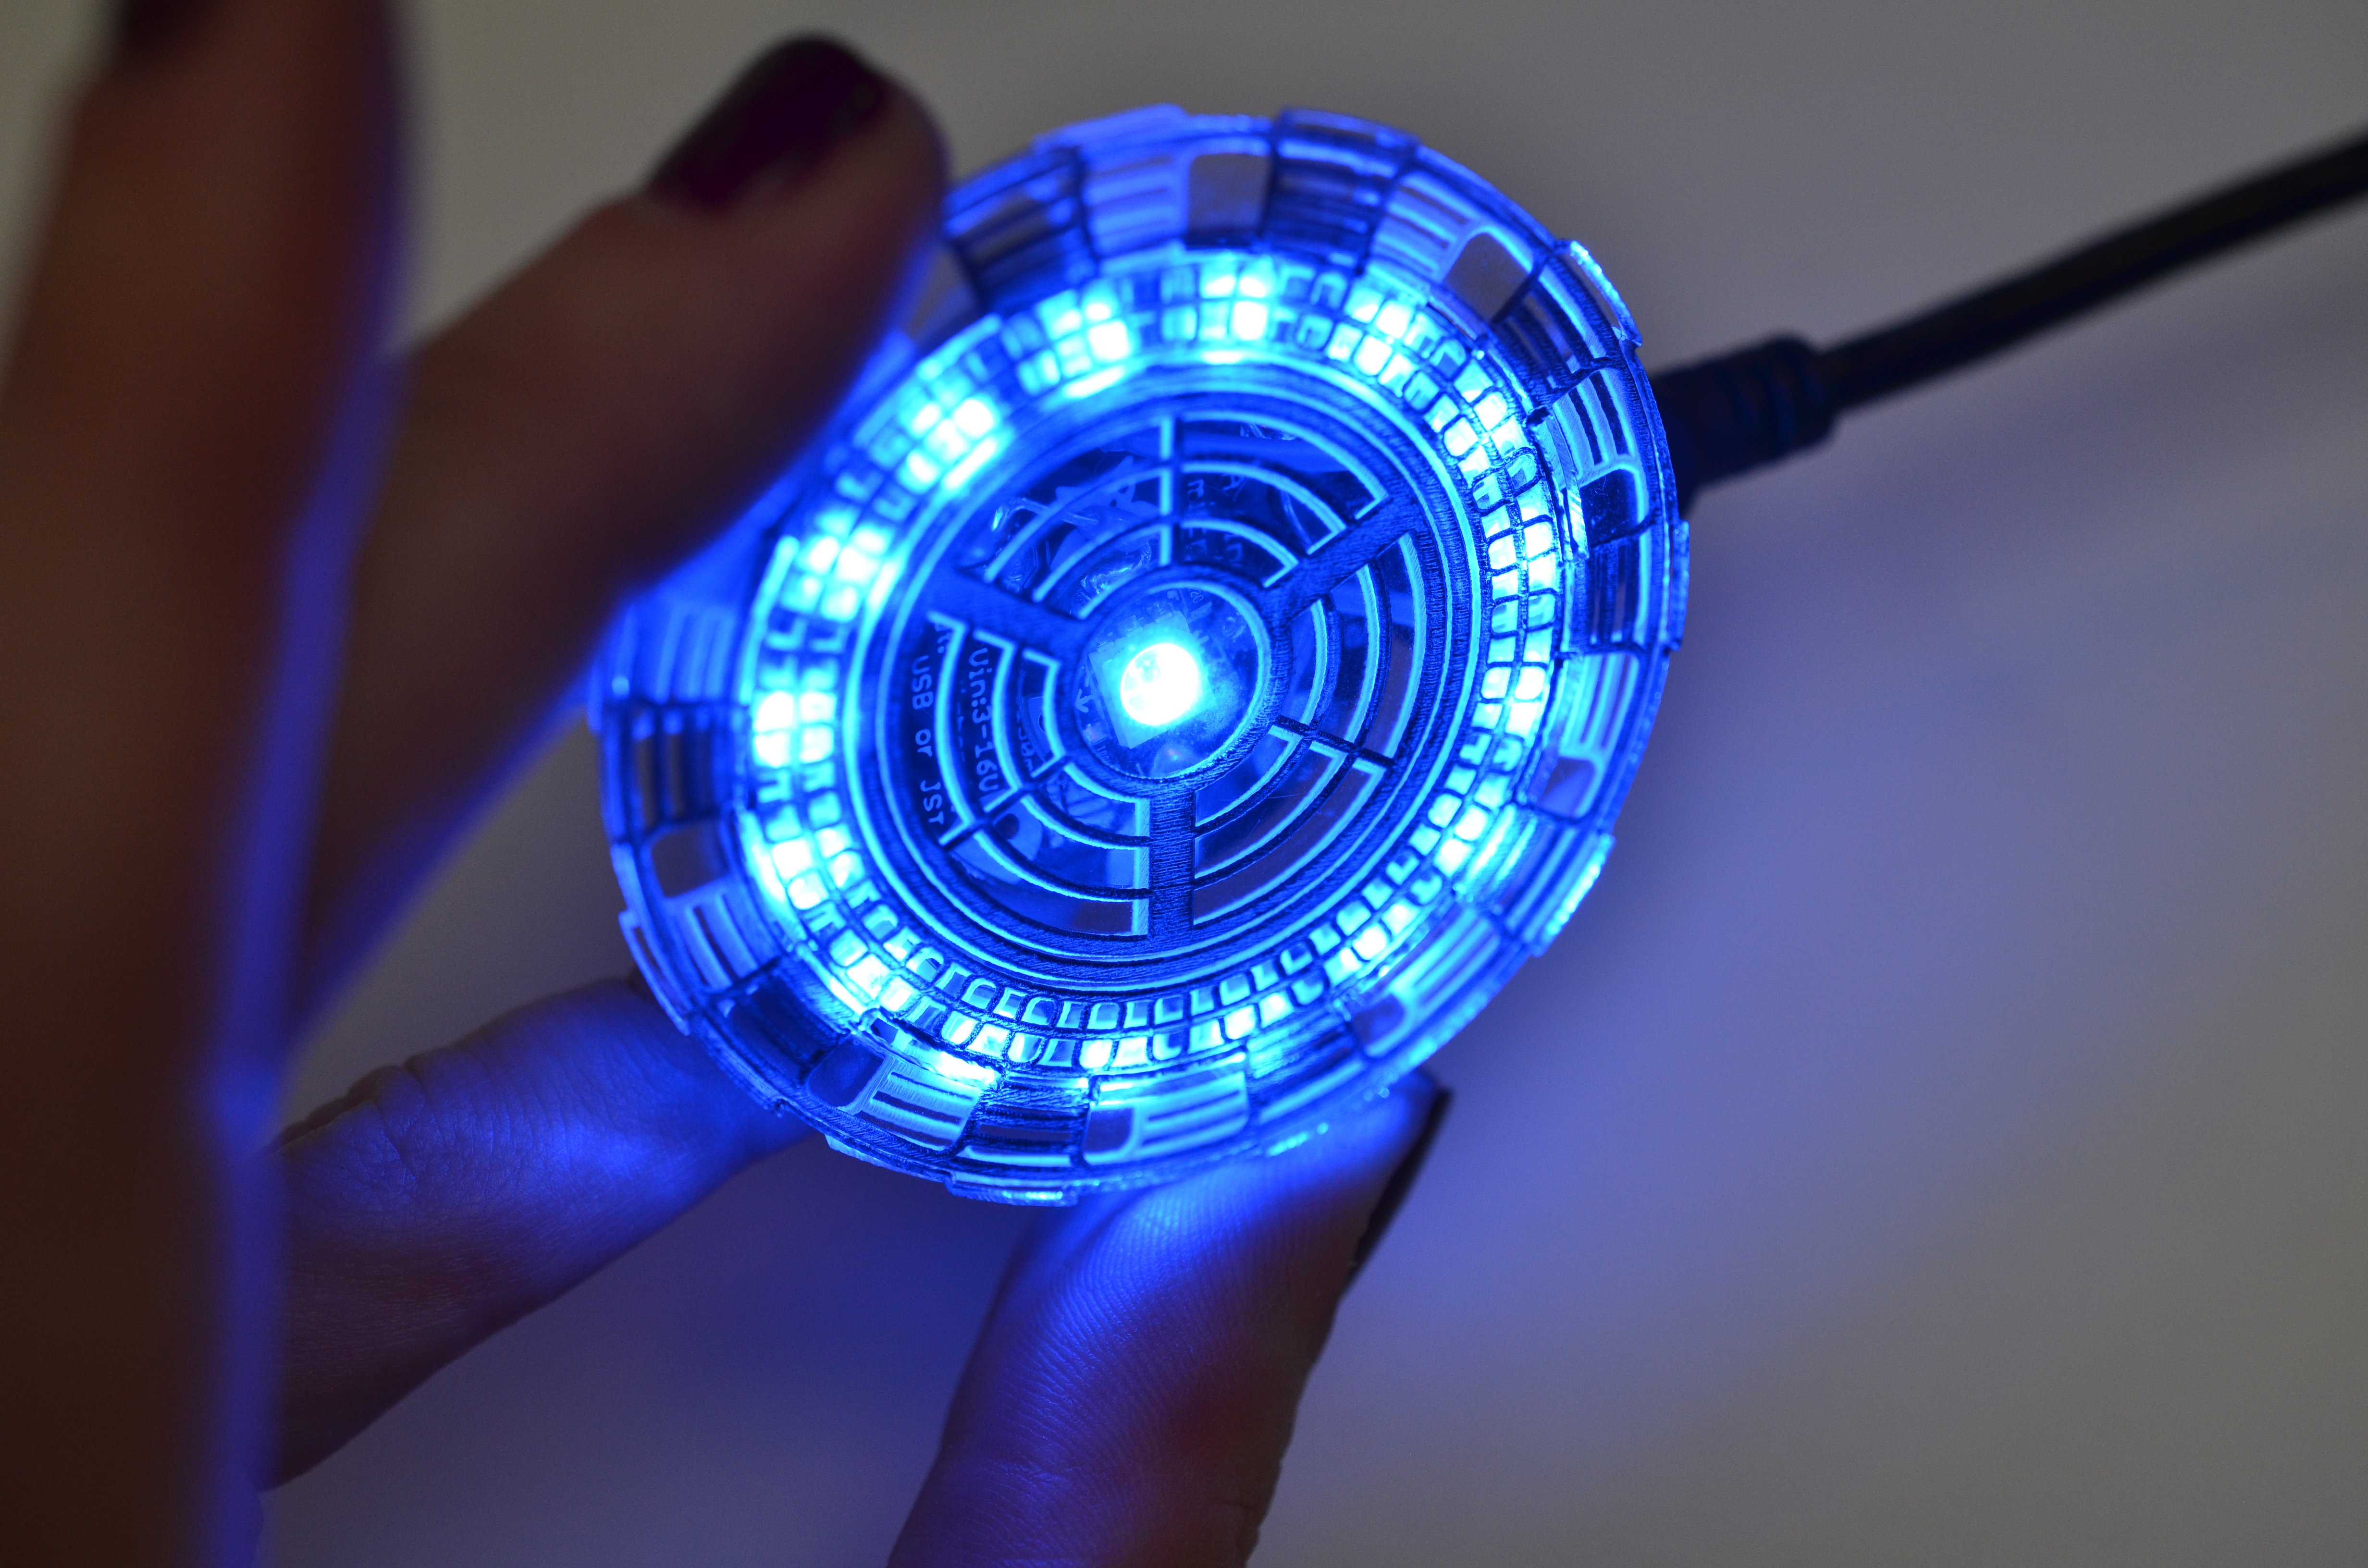 gemma_flora_iron-man-arc-reactor-adafruit-07.jpg